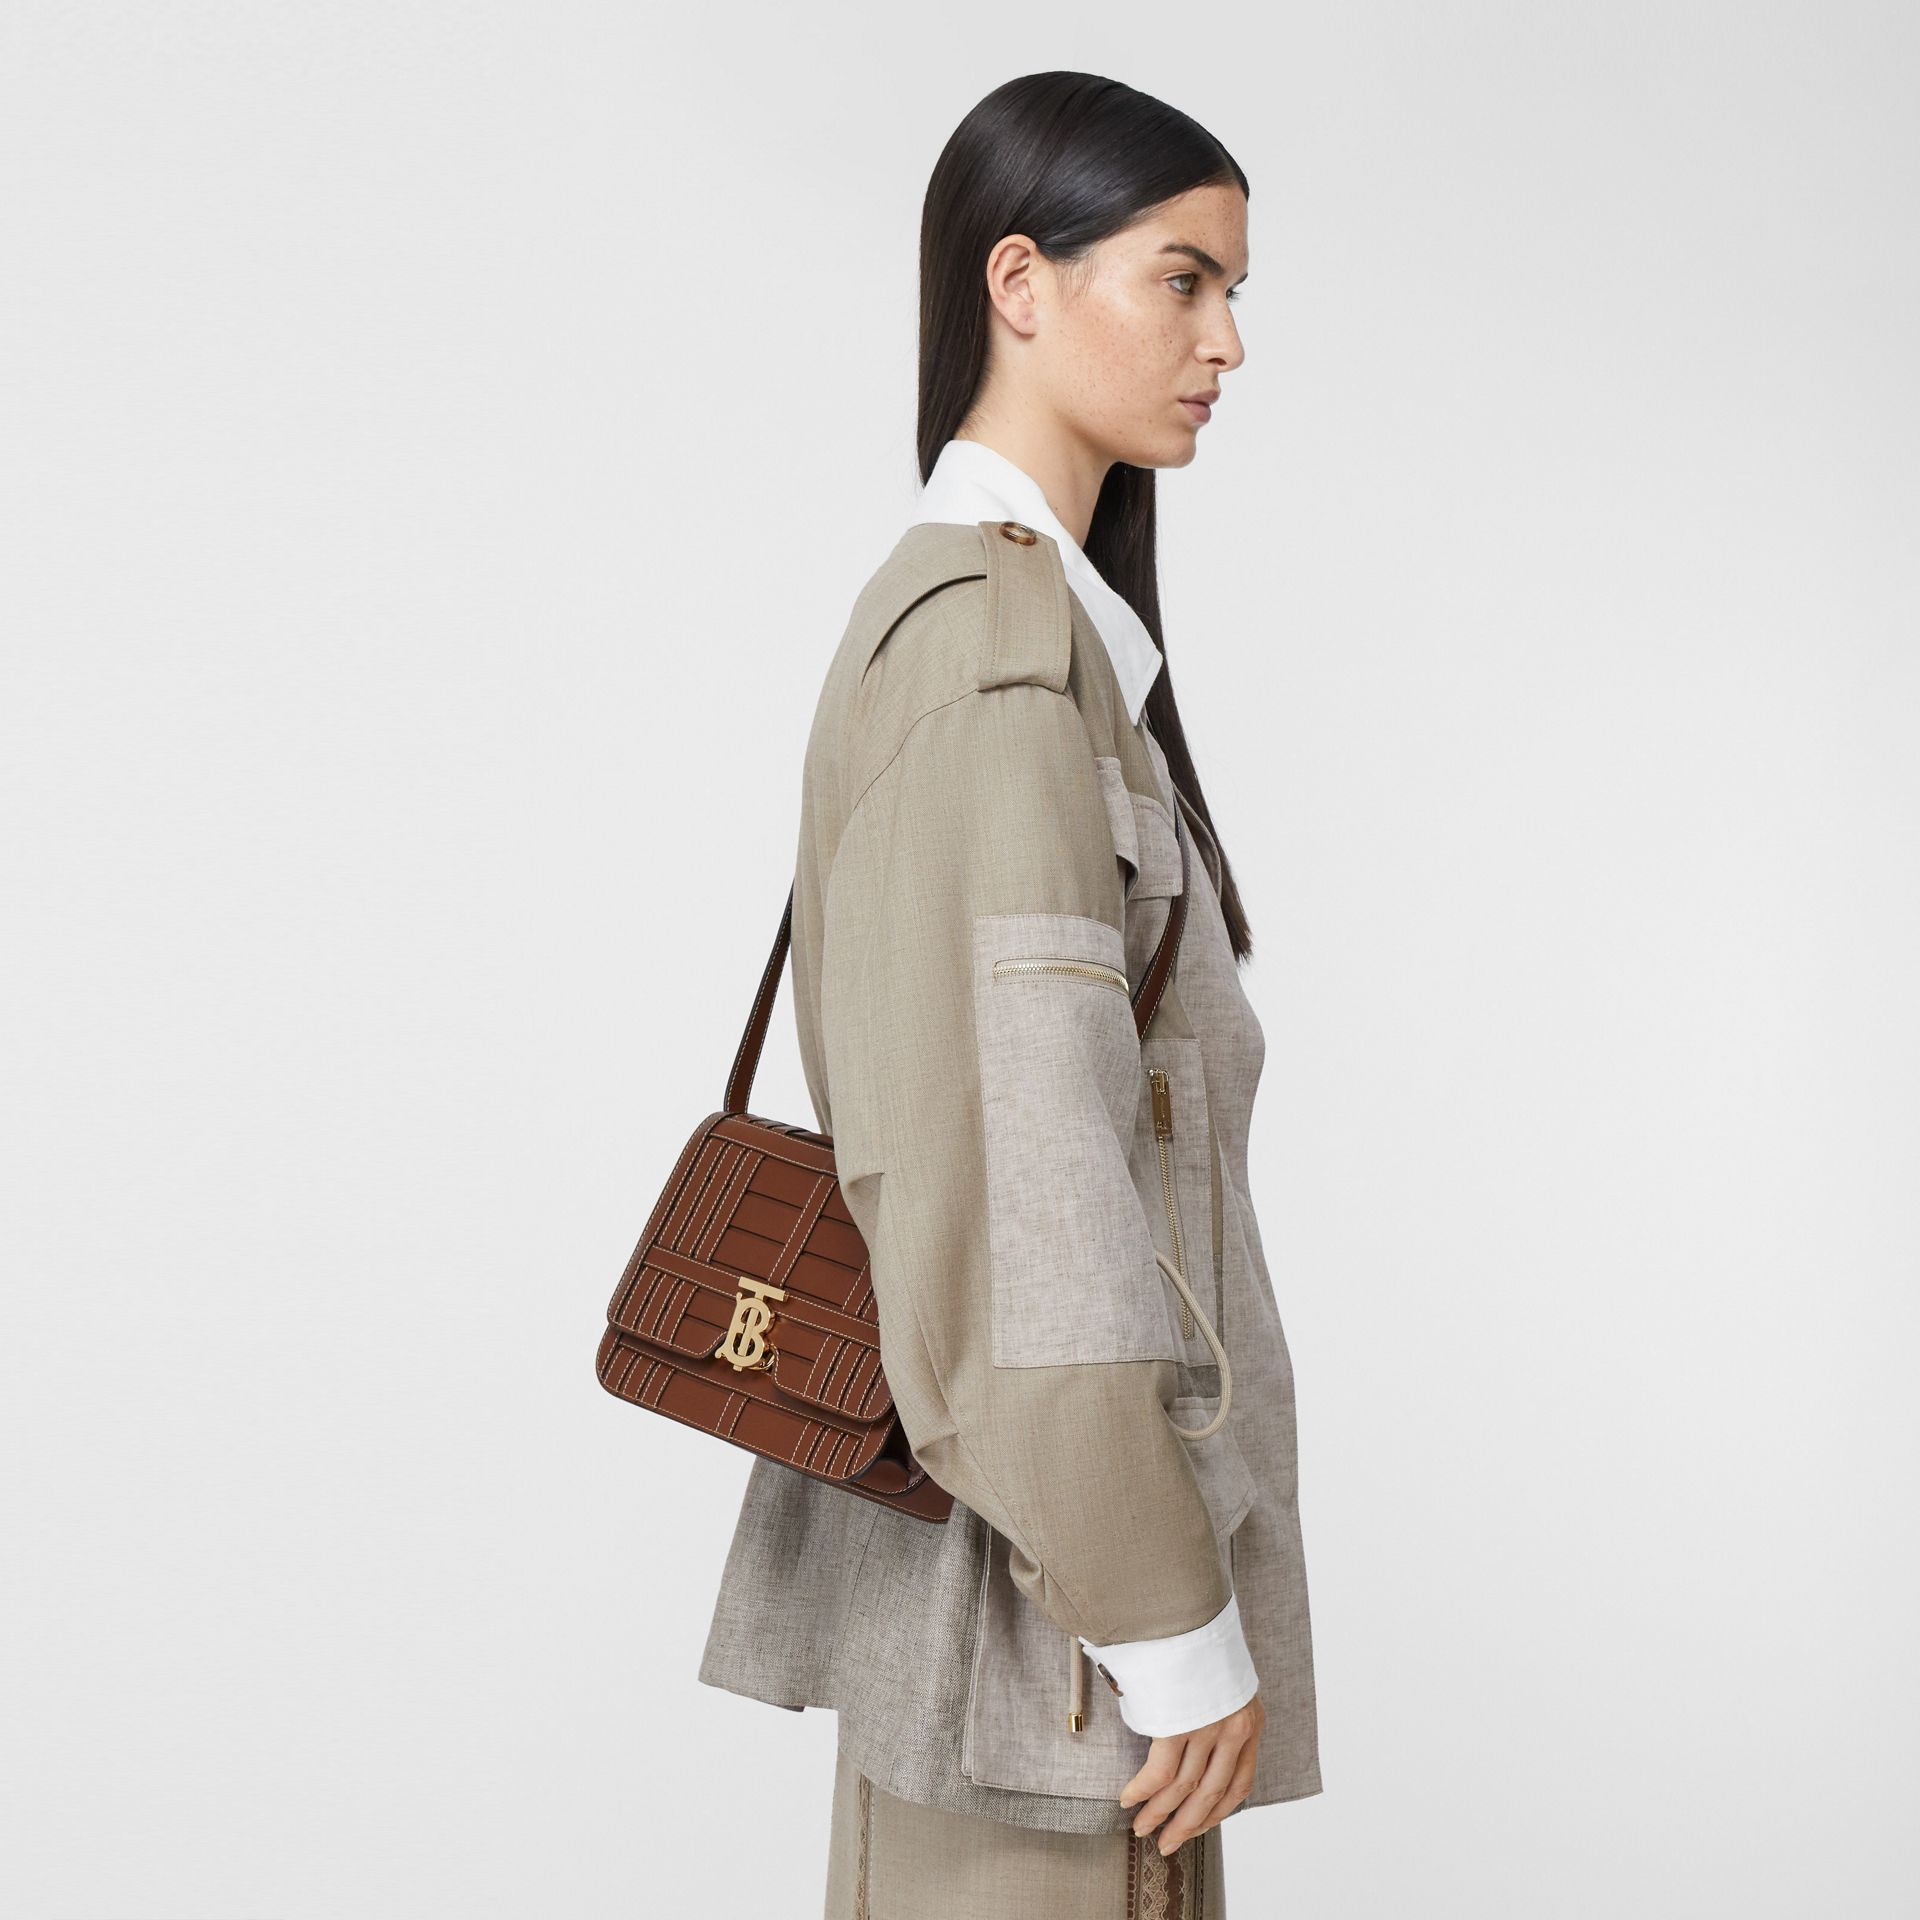 Medium Woven Leather TB Bag in Tan - Women | Burberry Canada - gallery image 2